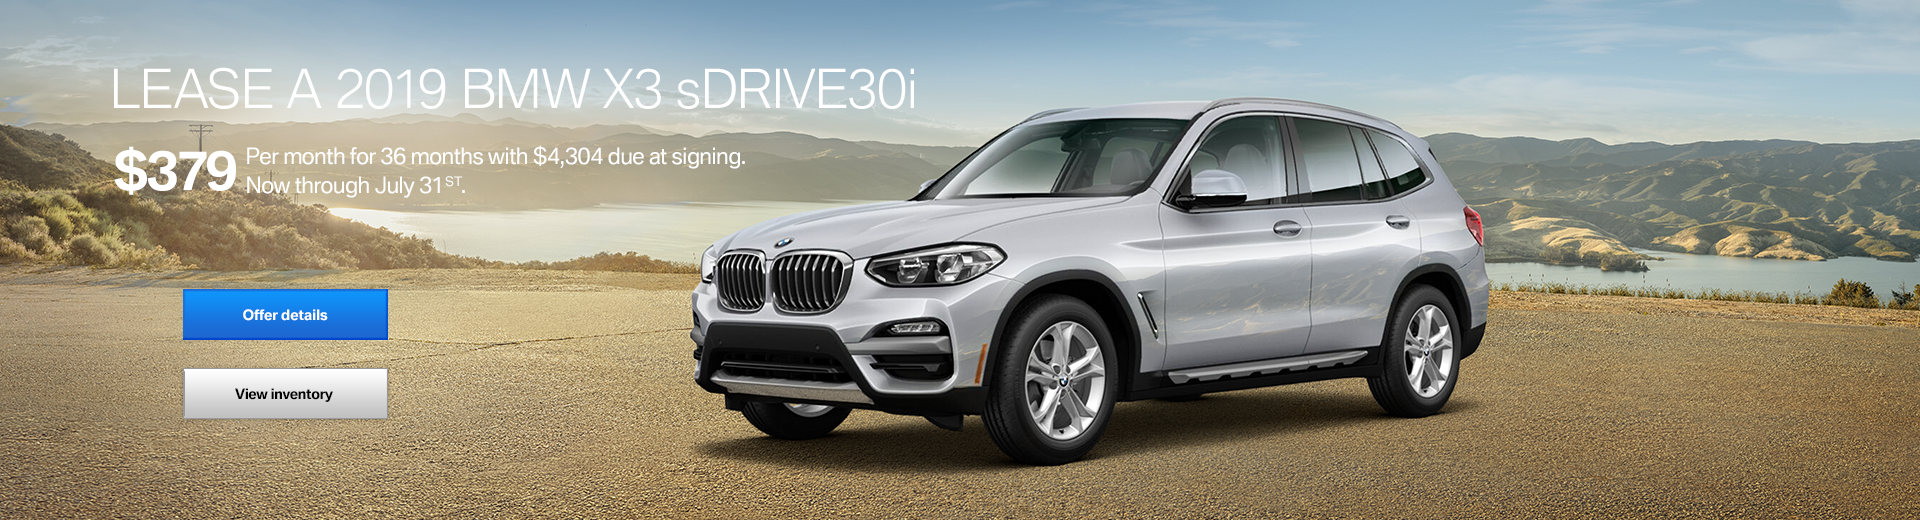 Bmw Dealership Near Me >> Bmw Florence Sc Bmw Service Florence Bmw Dealership Near Me